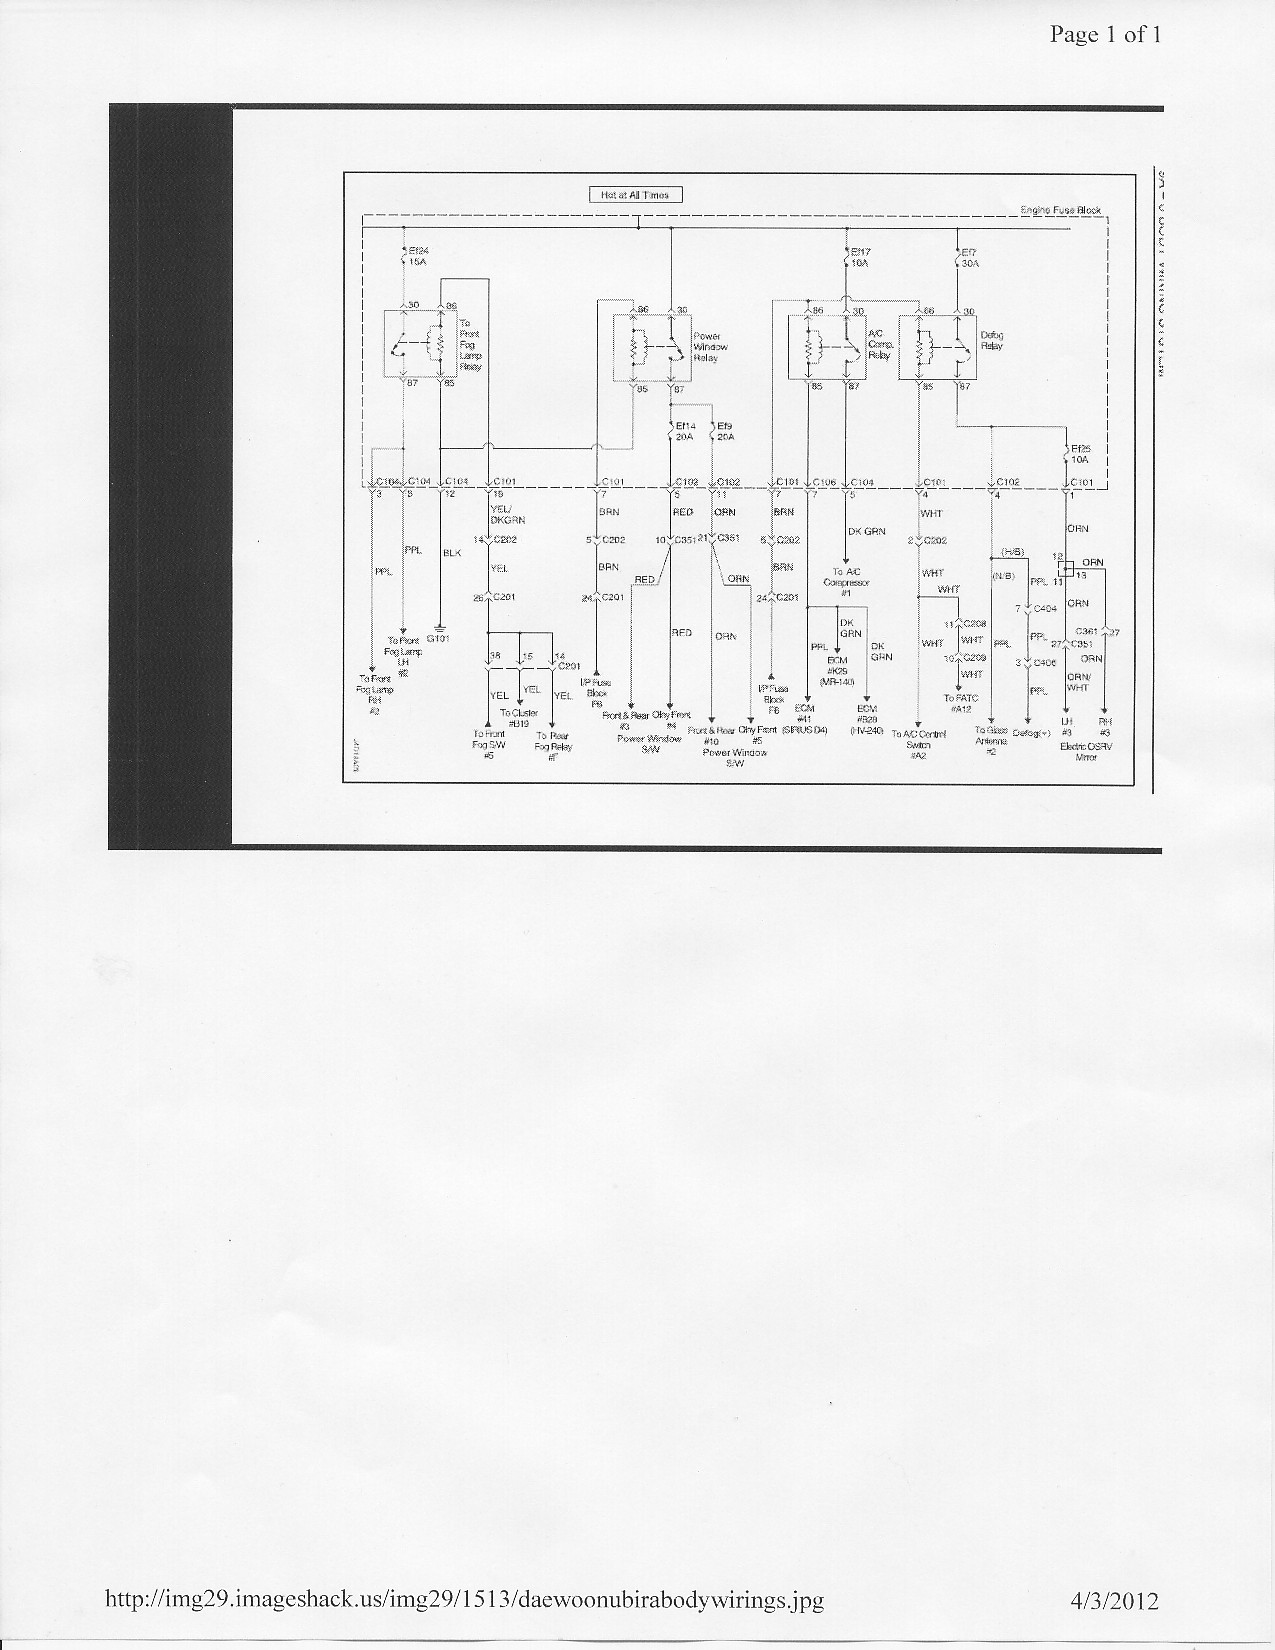 1999 daewoo nubira fuse box diagram 2001 daewoo lanos fuse box diagram